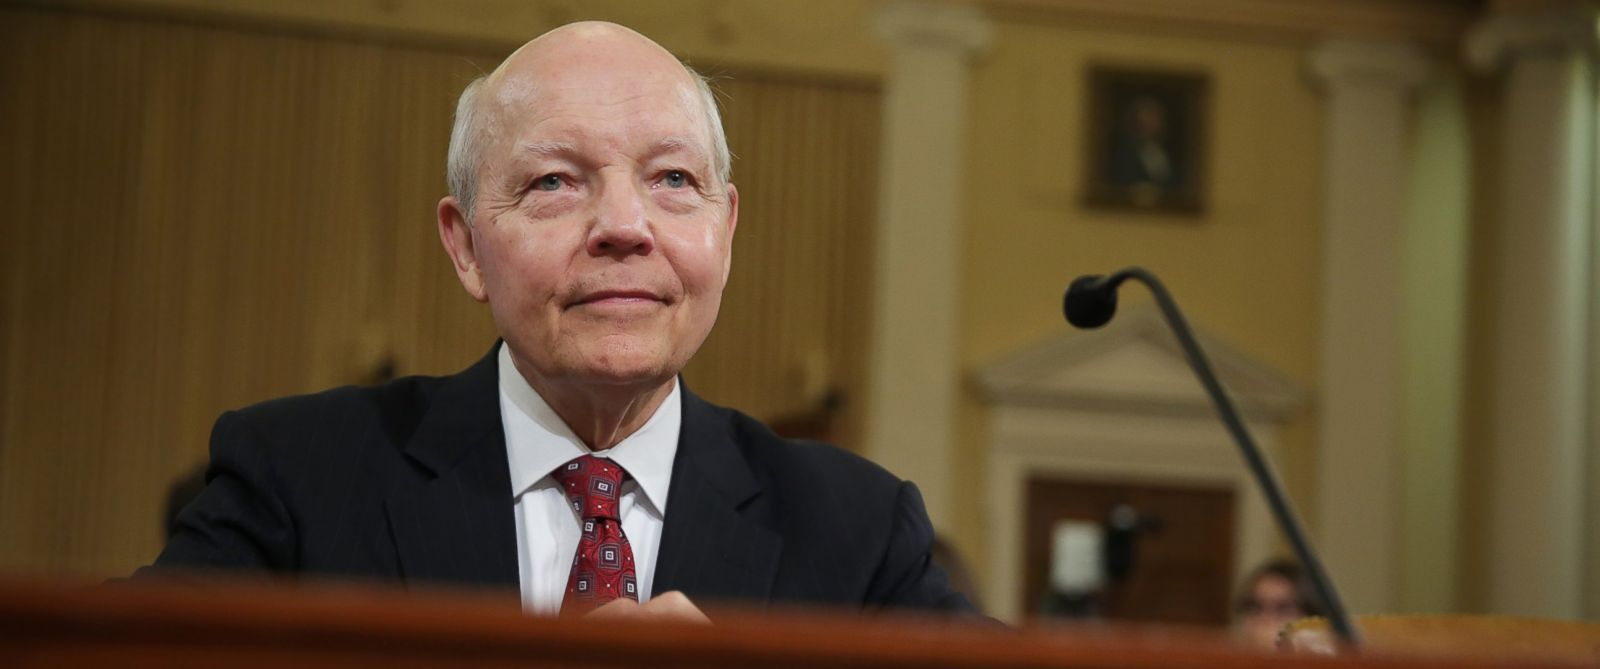 PHOTO: Internal Revenue Service (IRS) Commissioner John Koskinen testifies during a hearing before the House Ways and Means Committee June 20, 2014 on Capitol Hill in Washington, DC.